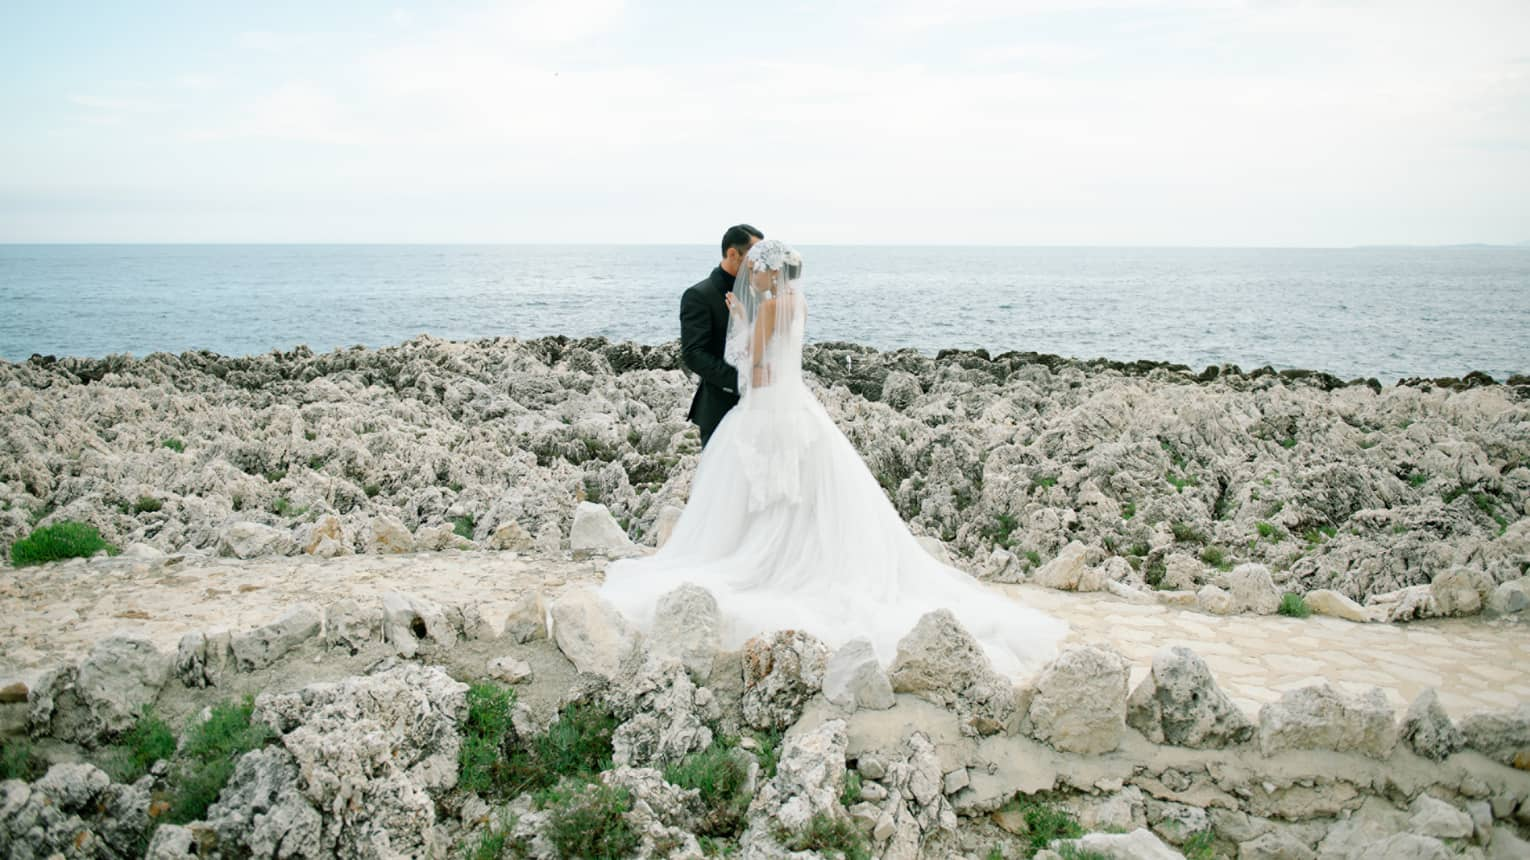 Groom and bride wearing veil over face in embrace, standing on rocky beach at sparkling blue sea